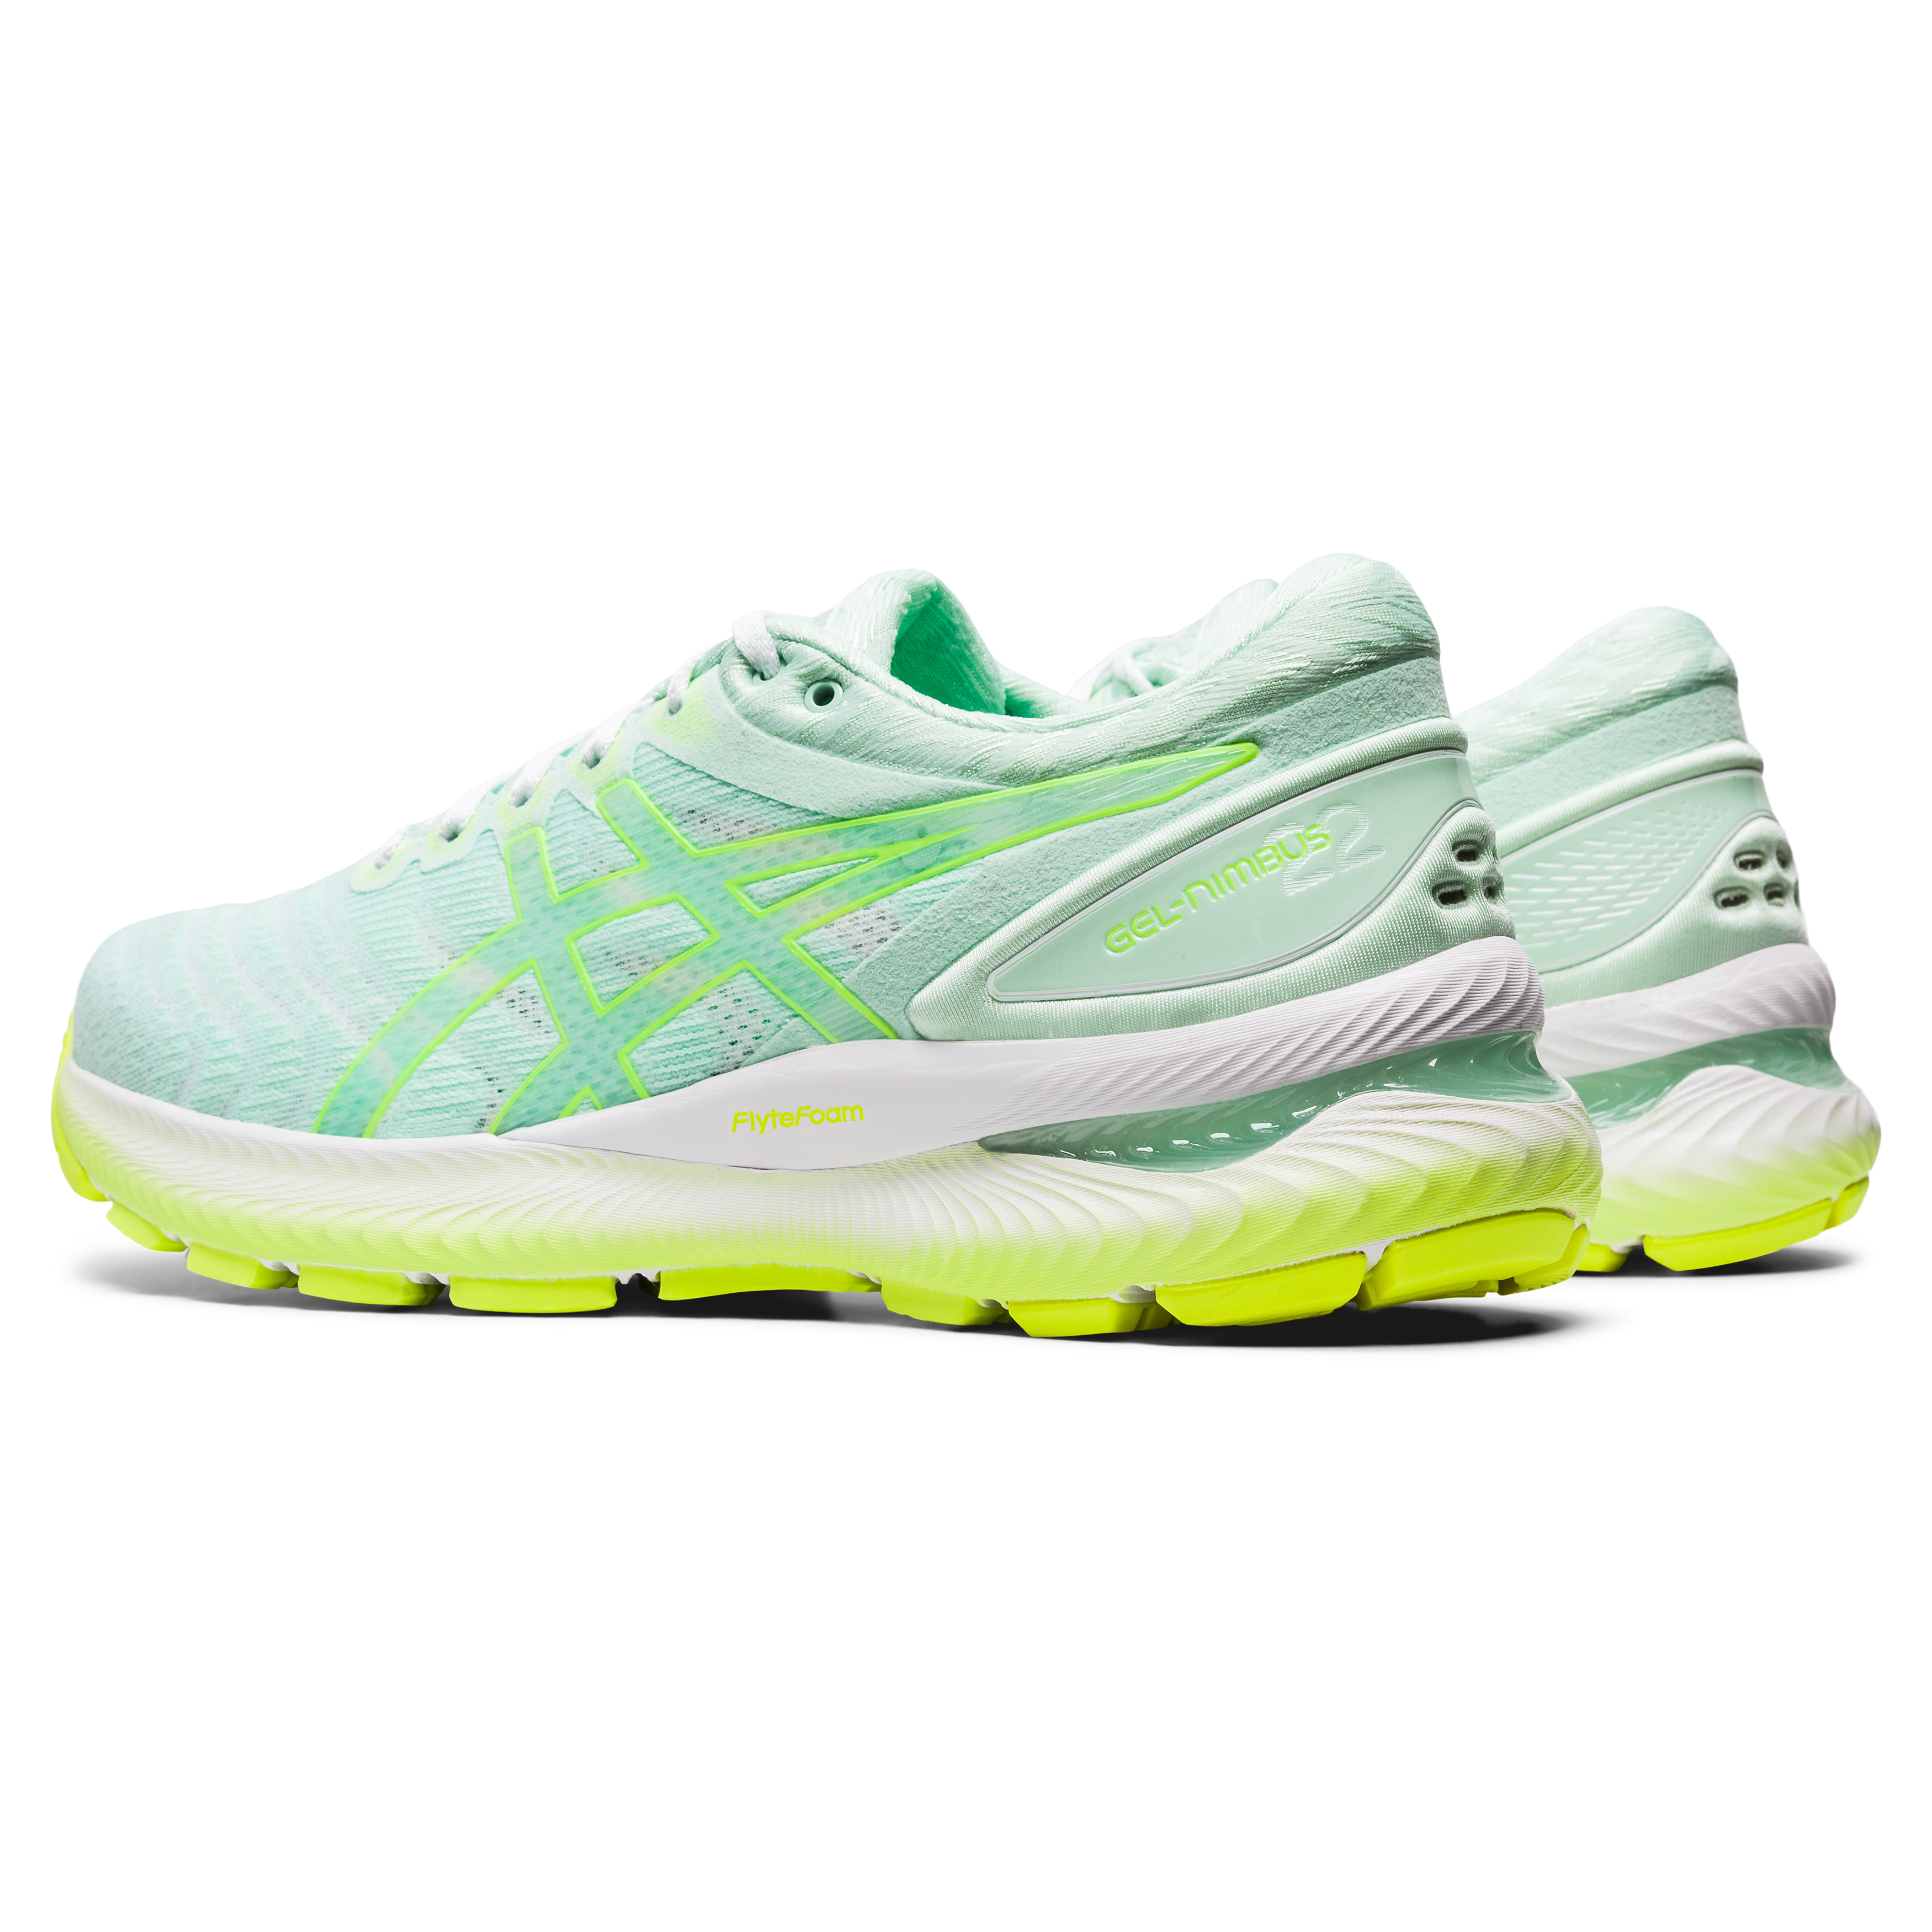 Women's Asics GEL-Nimbus 22 Modern Tokyo Running Shoe - Color: Mint Tint/Safety Yellow - Size: 5 - Width: Regular, Mint Tint/Safety Yellow, large, image 4